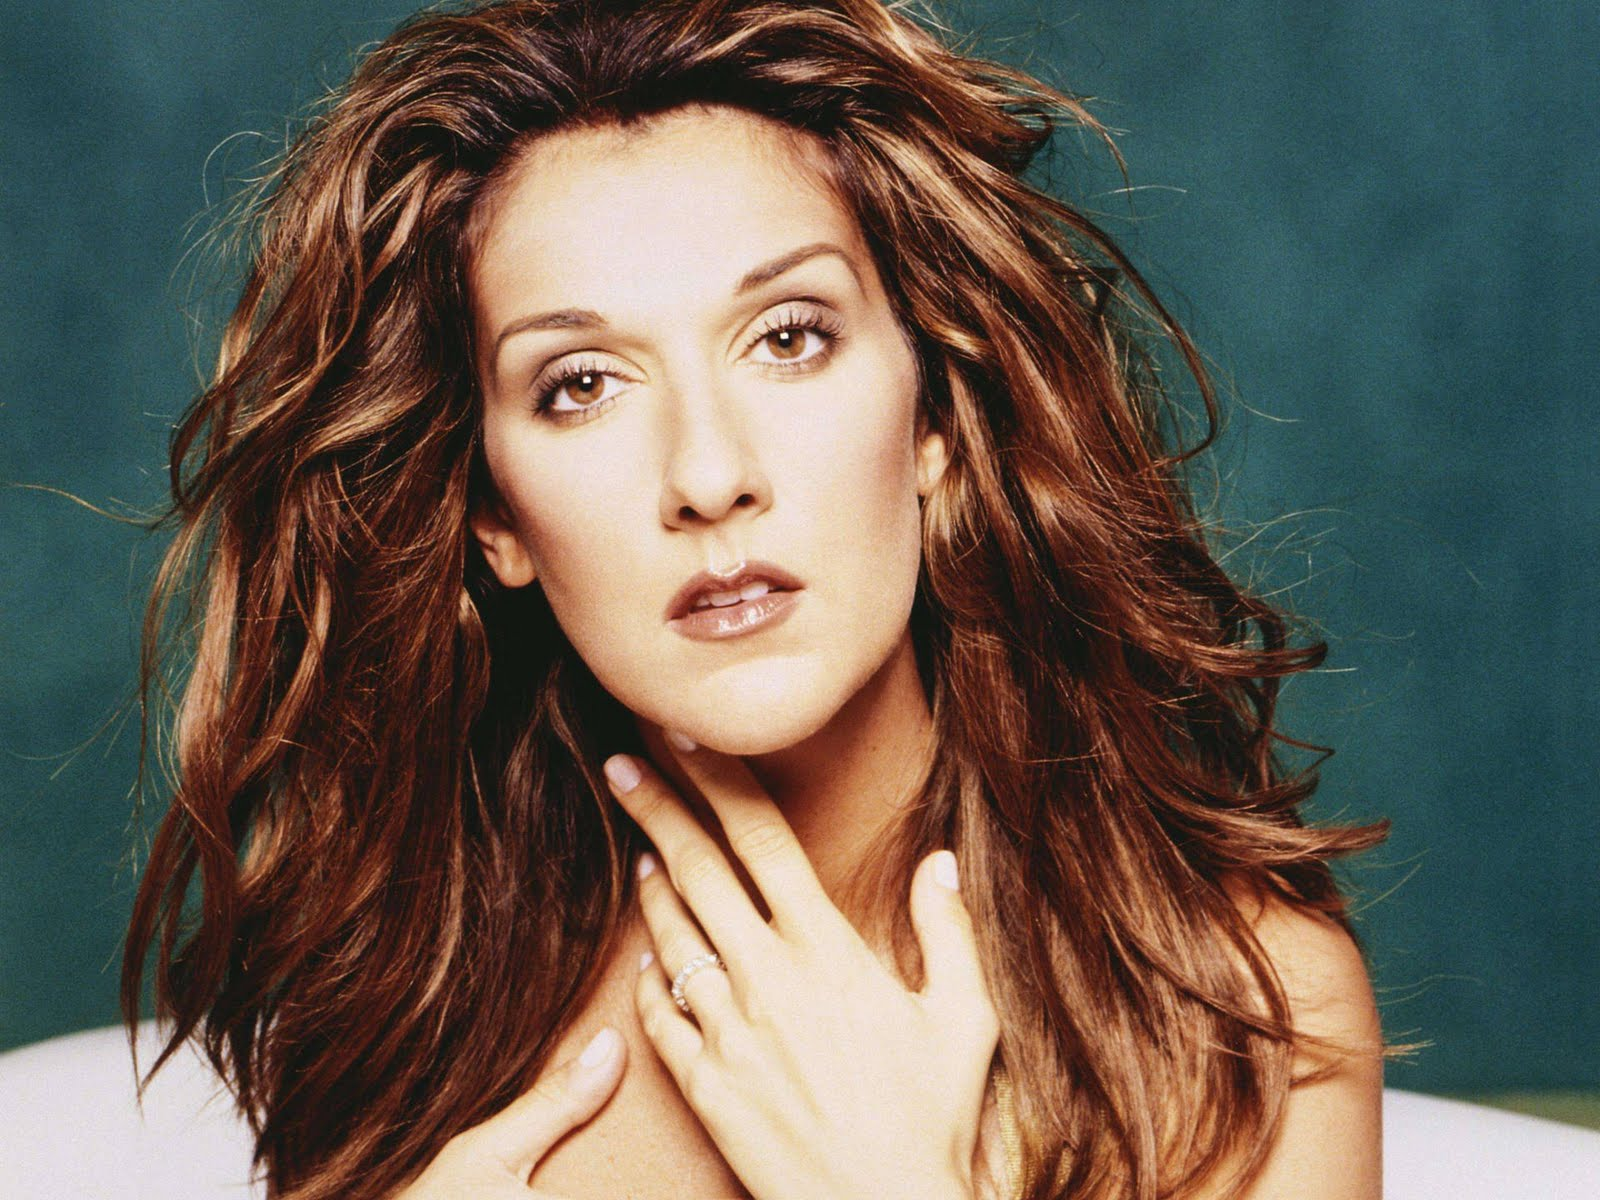 Celine Dion Hot Pictures, Photo Gallery & Wallpapers: Hot